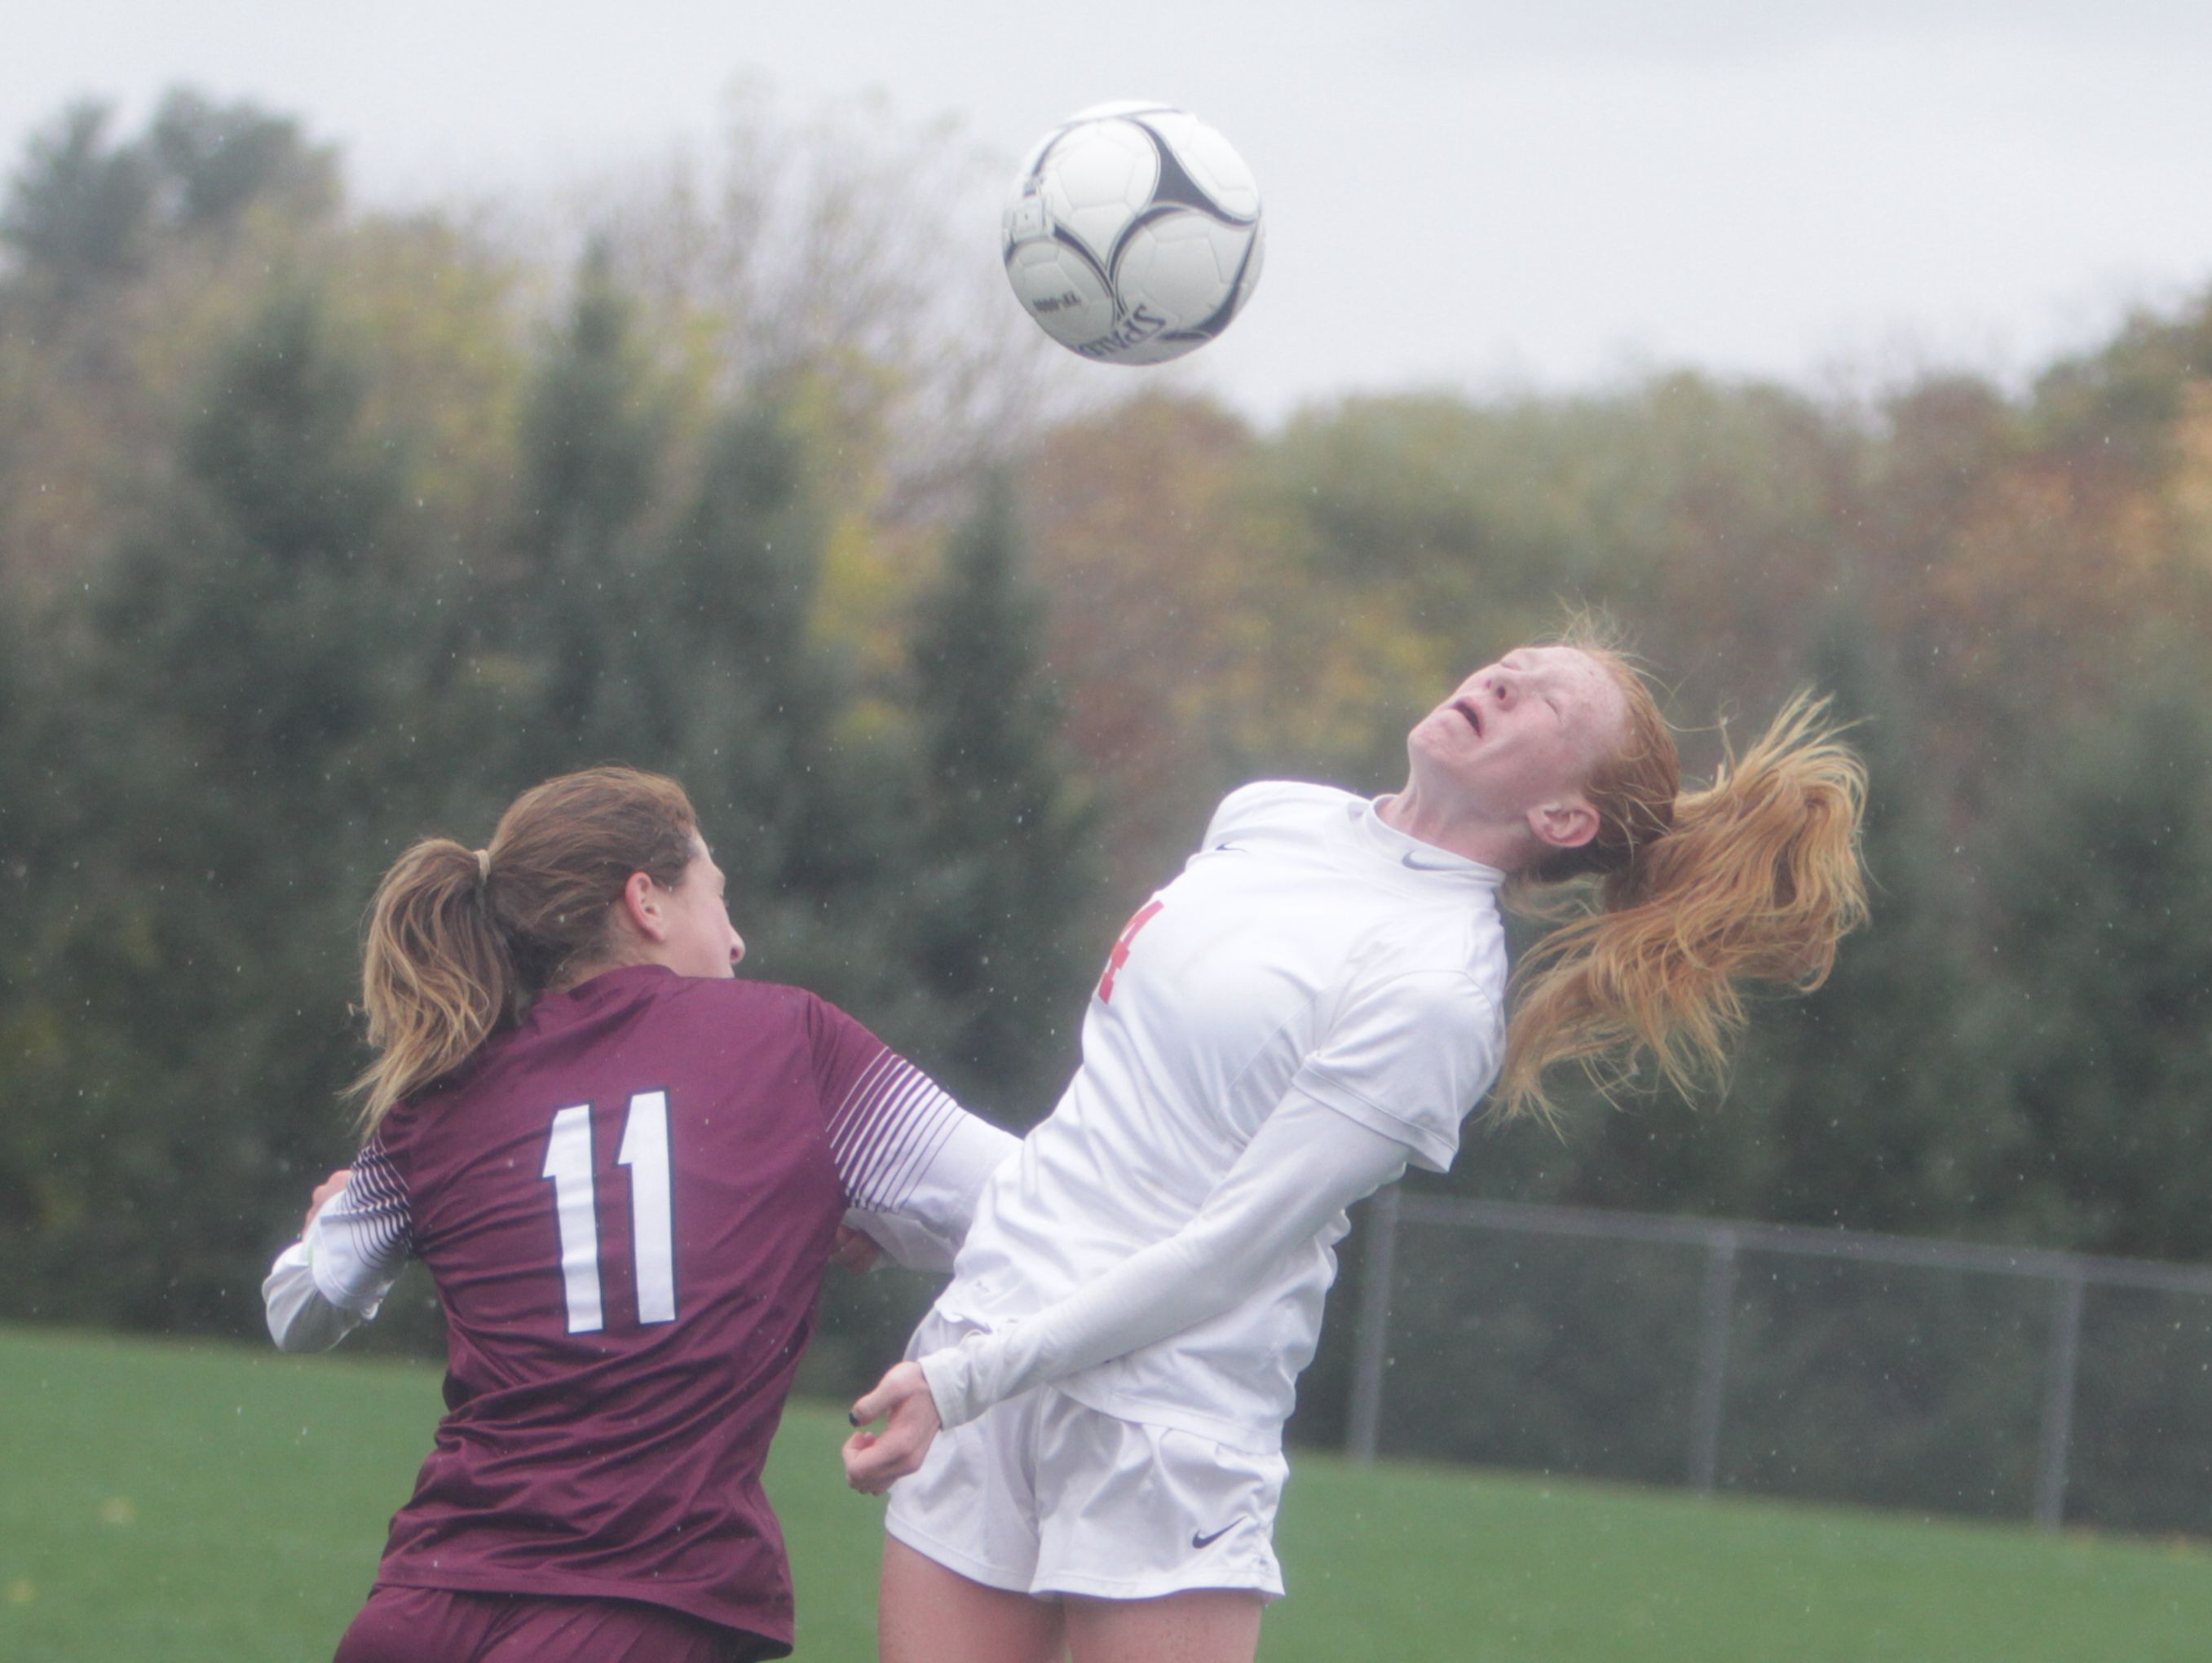 Scarsdale's Hayley Rozencwaig (11) and North Rockland's Kelly Brady (4) both jump for the ball during a Section 1 girls soccer Class AA first round game between North Rockland and Scarsdale at North Rockland High School on Saturday, Oct. 22nd, 2016. North Rockland won 1-0.